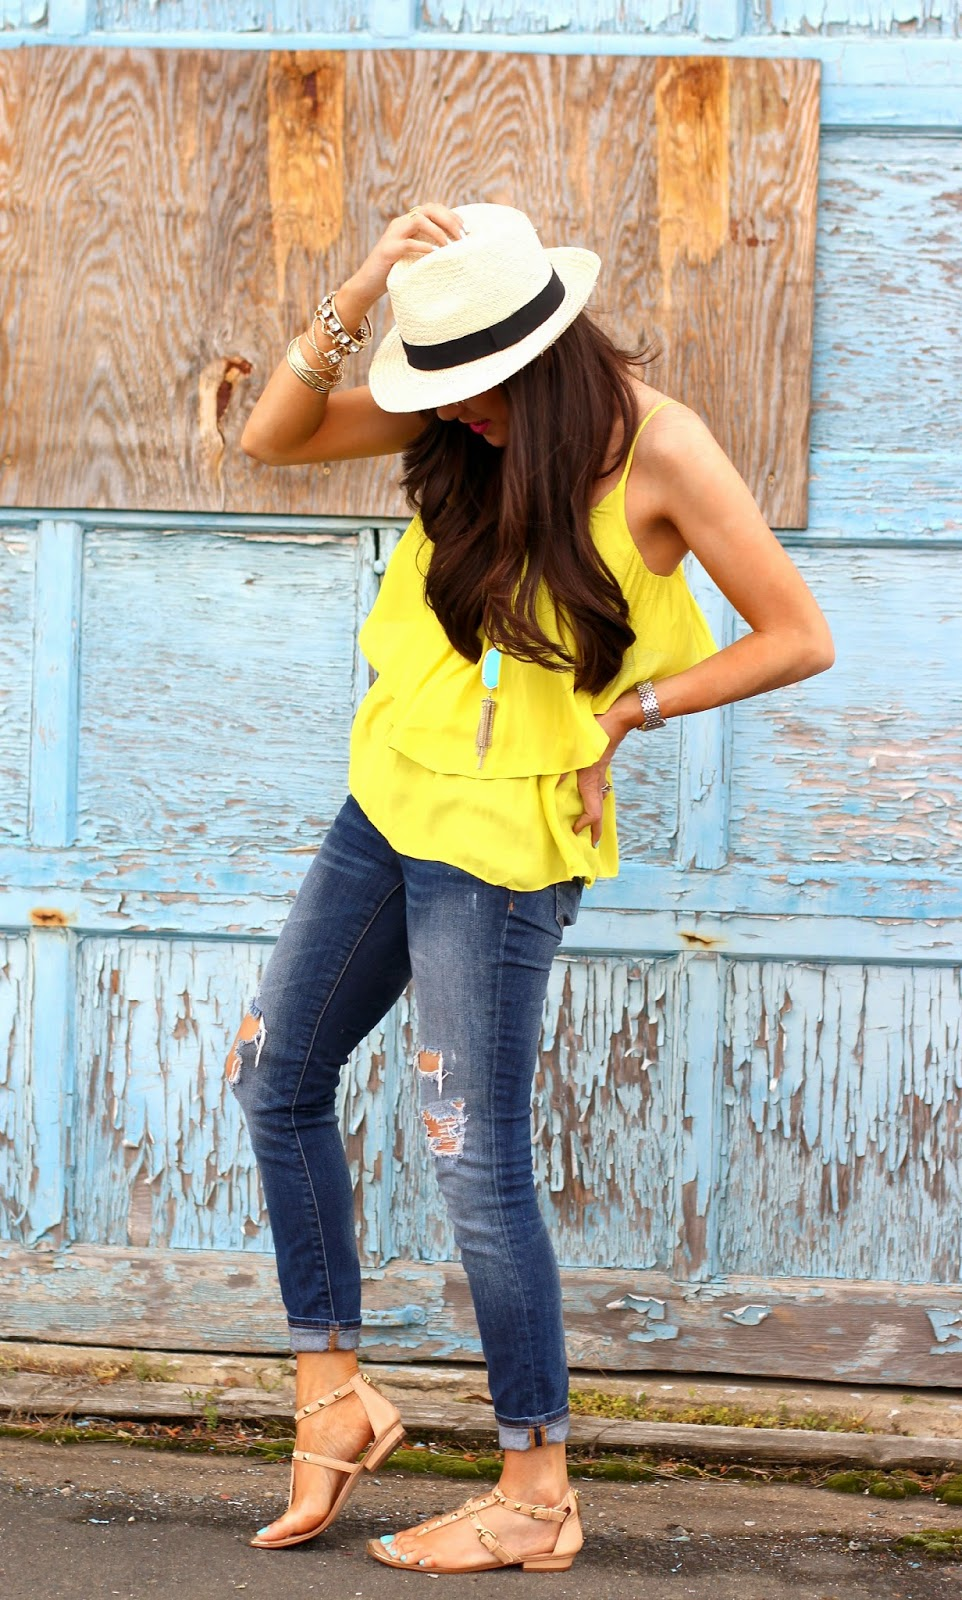 www.TheSweetestThingBlog.com, Emily Gemma, How To Wear A Fedora, Ripped Skinny Jeans, Valentino Inspired Sandals, Pinterest Summer Outfit 2014, Pinterest SUmmer Fashion, Michael Kors Runway Watch, Fashion Blog, Style Blog, Pinterest Outfits for Summer, Karen Walker Super Duper Strength Sunglasses, Gold Arm Party, Gold Bracelets, Nordstrom Studded Sandals, Gap Ripped Skinny Jeans, Forever 21 Neon Yellow Tank, Gorjana Rings, Mindy Maes Market Bracelet, Michele Diamond Deco Watch, Kendra Scott Necklace in turquiose